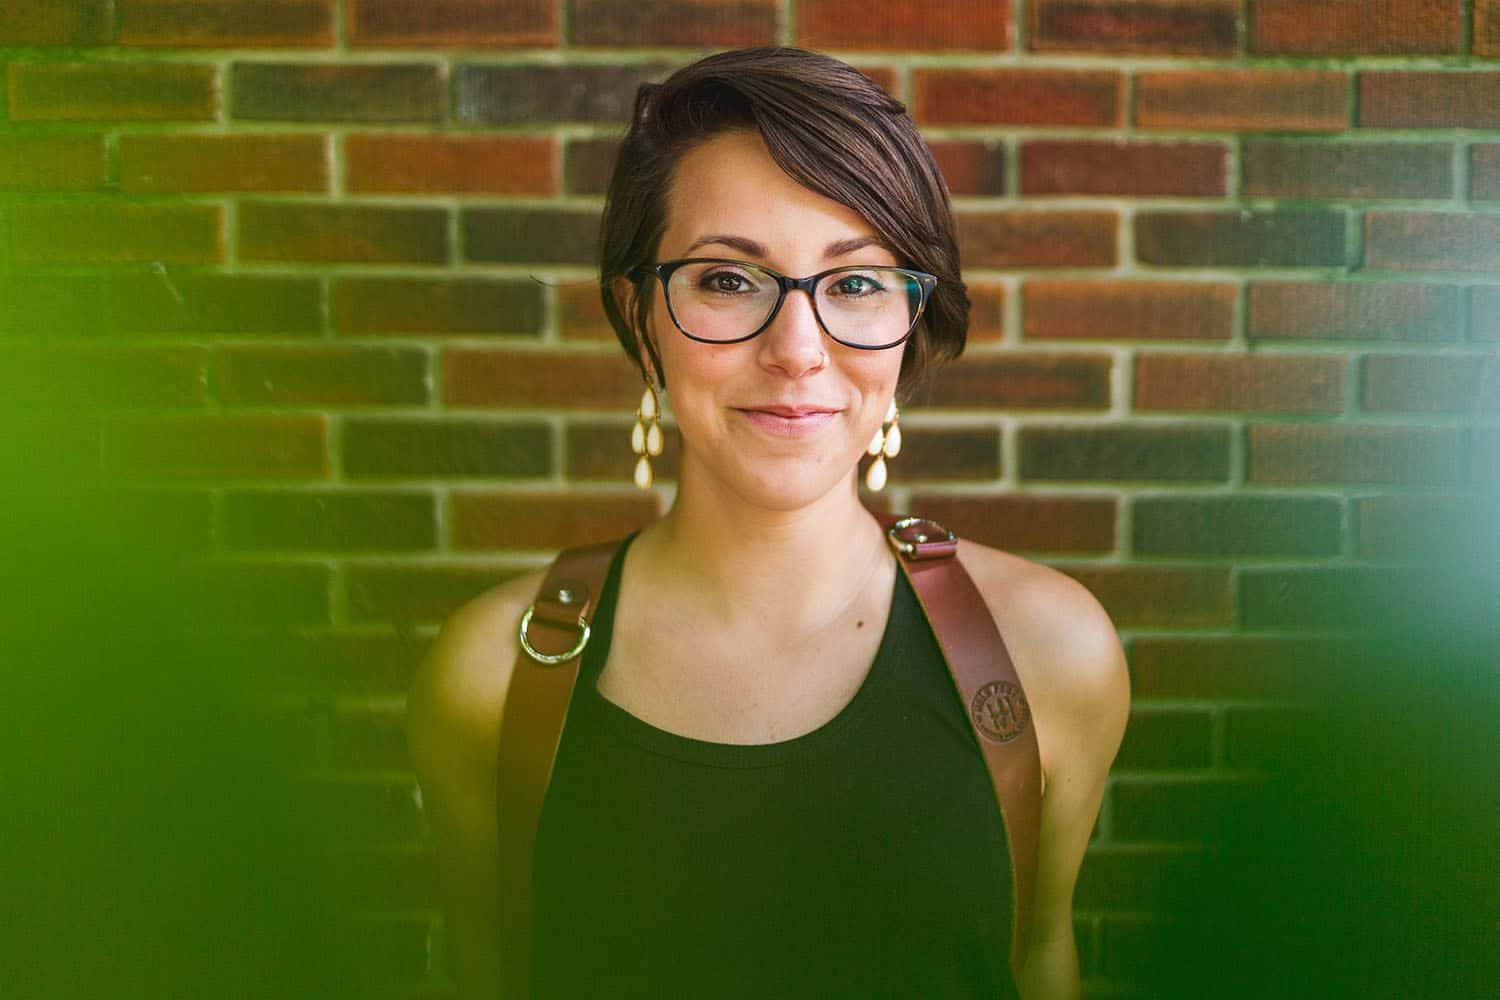 Photographer Mallory Regan, a caucasion woman with short brunette hair, glasses, and gold earrings, stands against a brick backdrop framed by leaves. She is smiling and wearing a HoldFast harness, made for carrying multiple cameras.